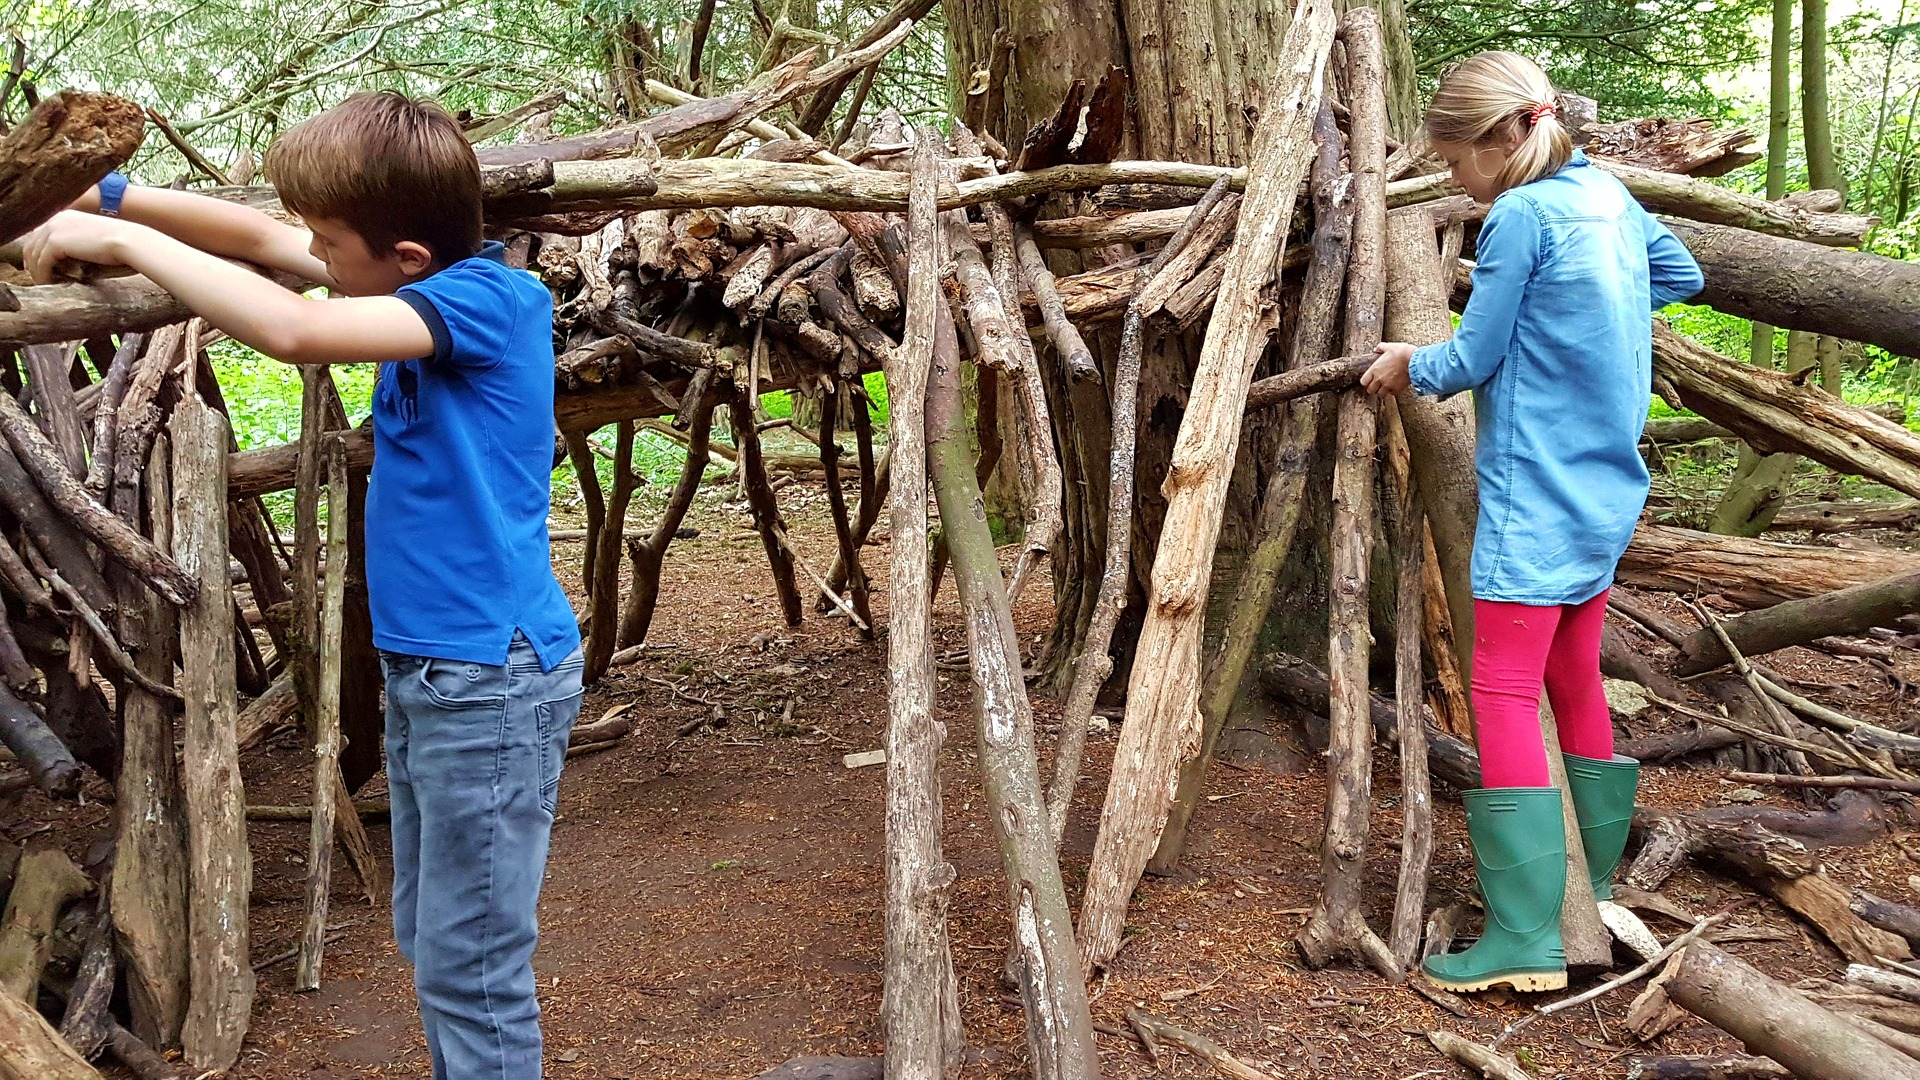 Outdoor Immersive Learning